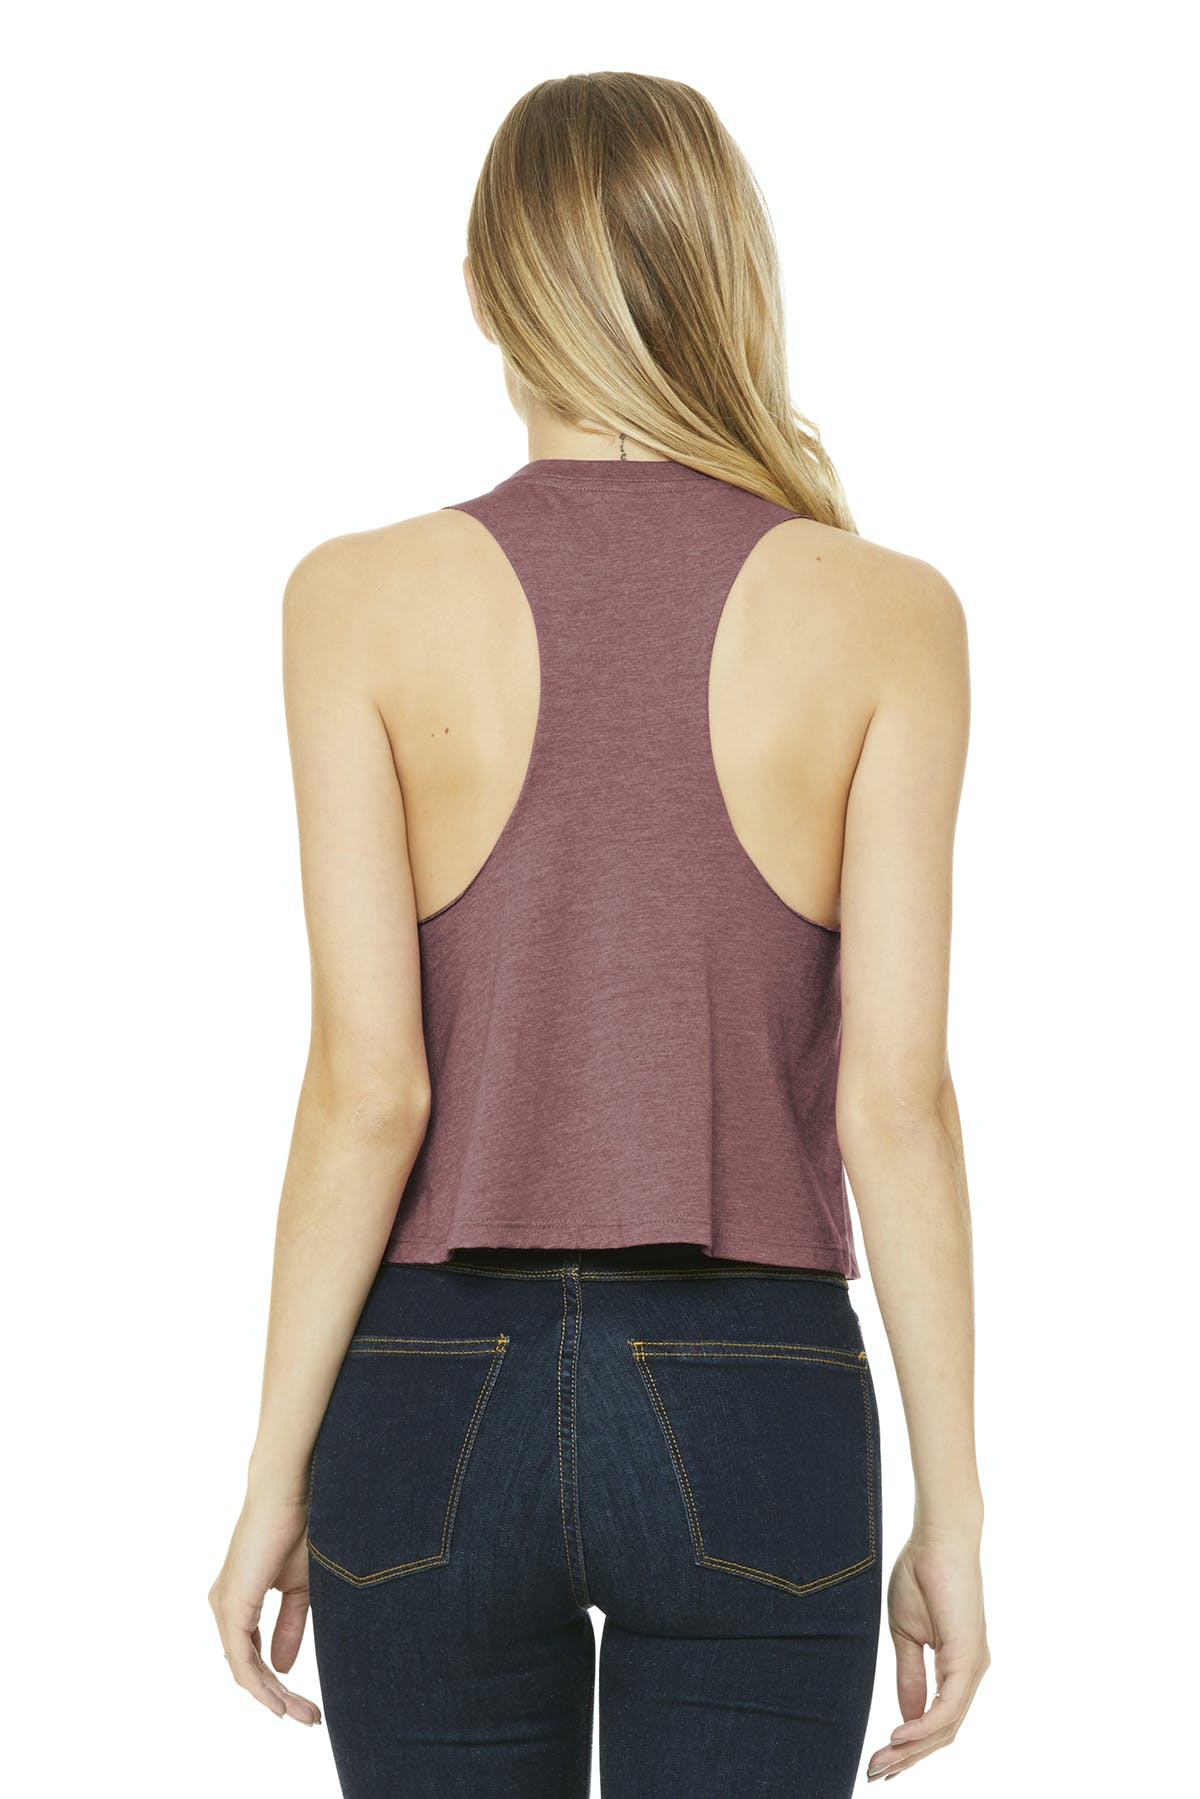 Bella+Canvas ® Women's Racerback Cropped Tank - sold by PRINT CITY GRAPHICS, INC